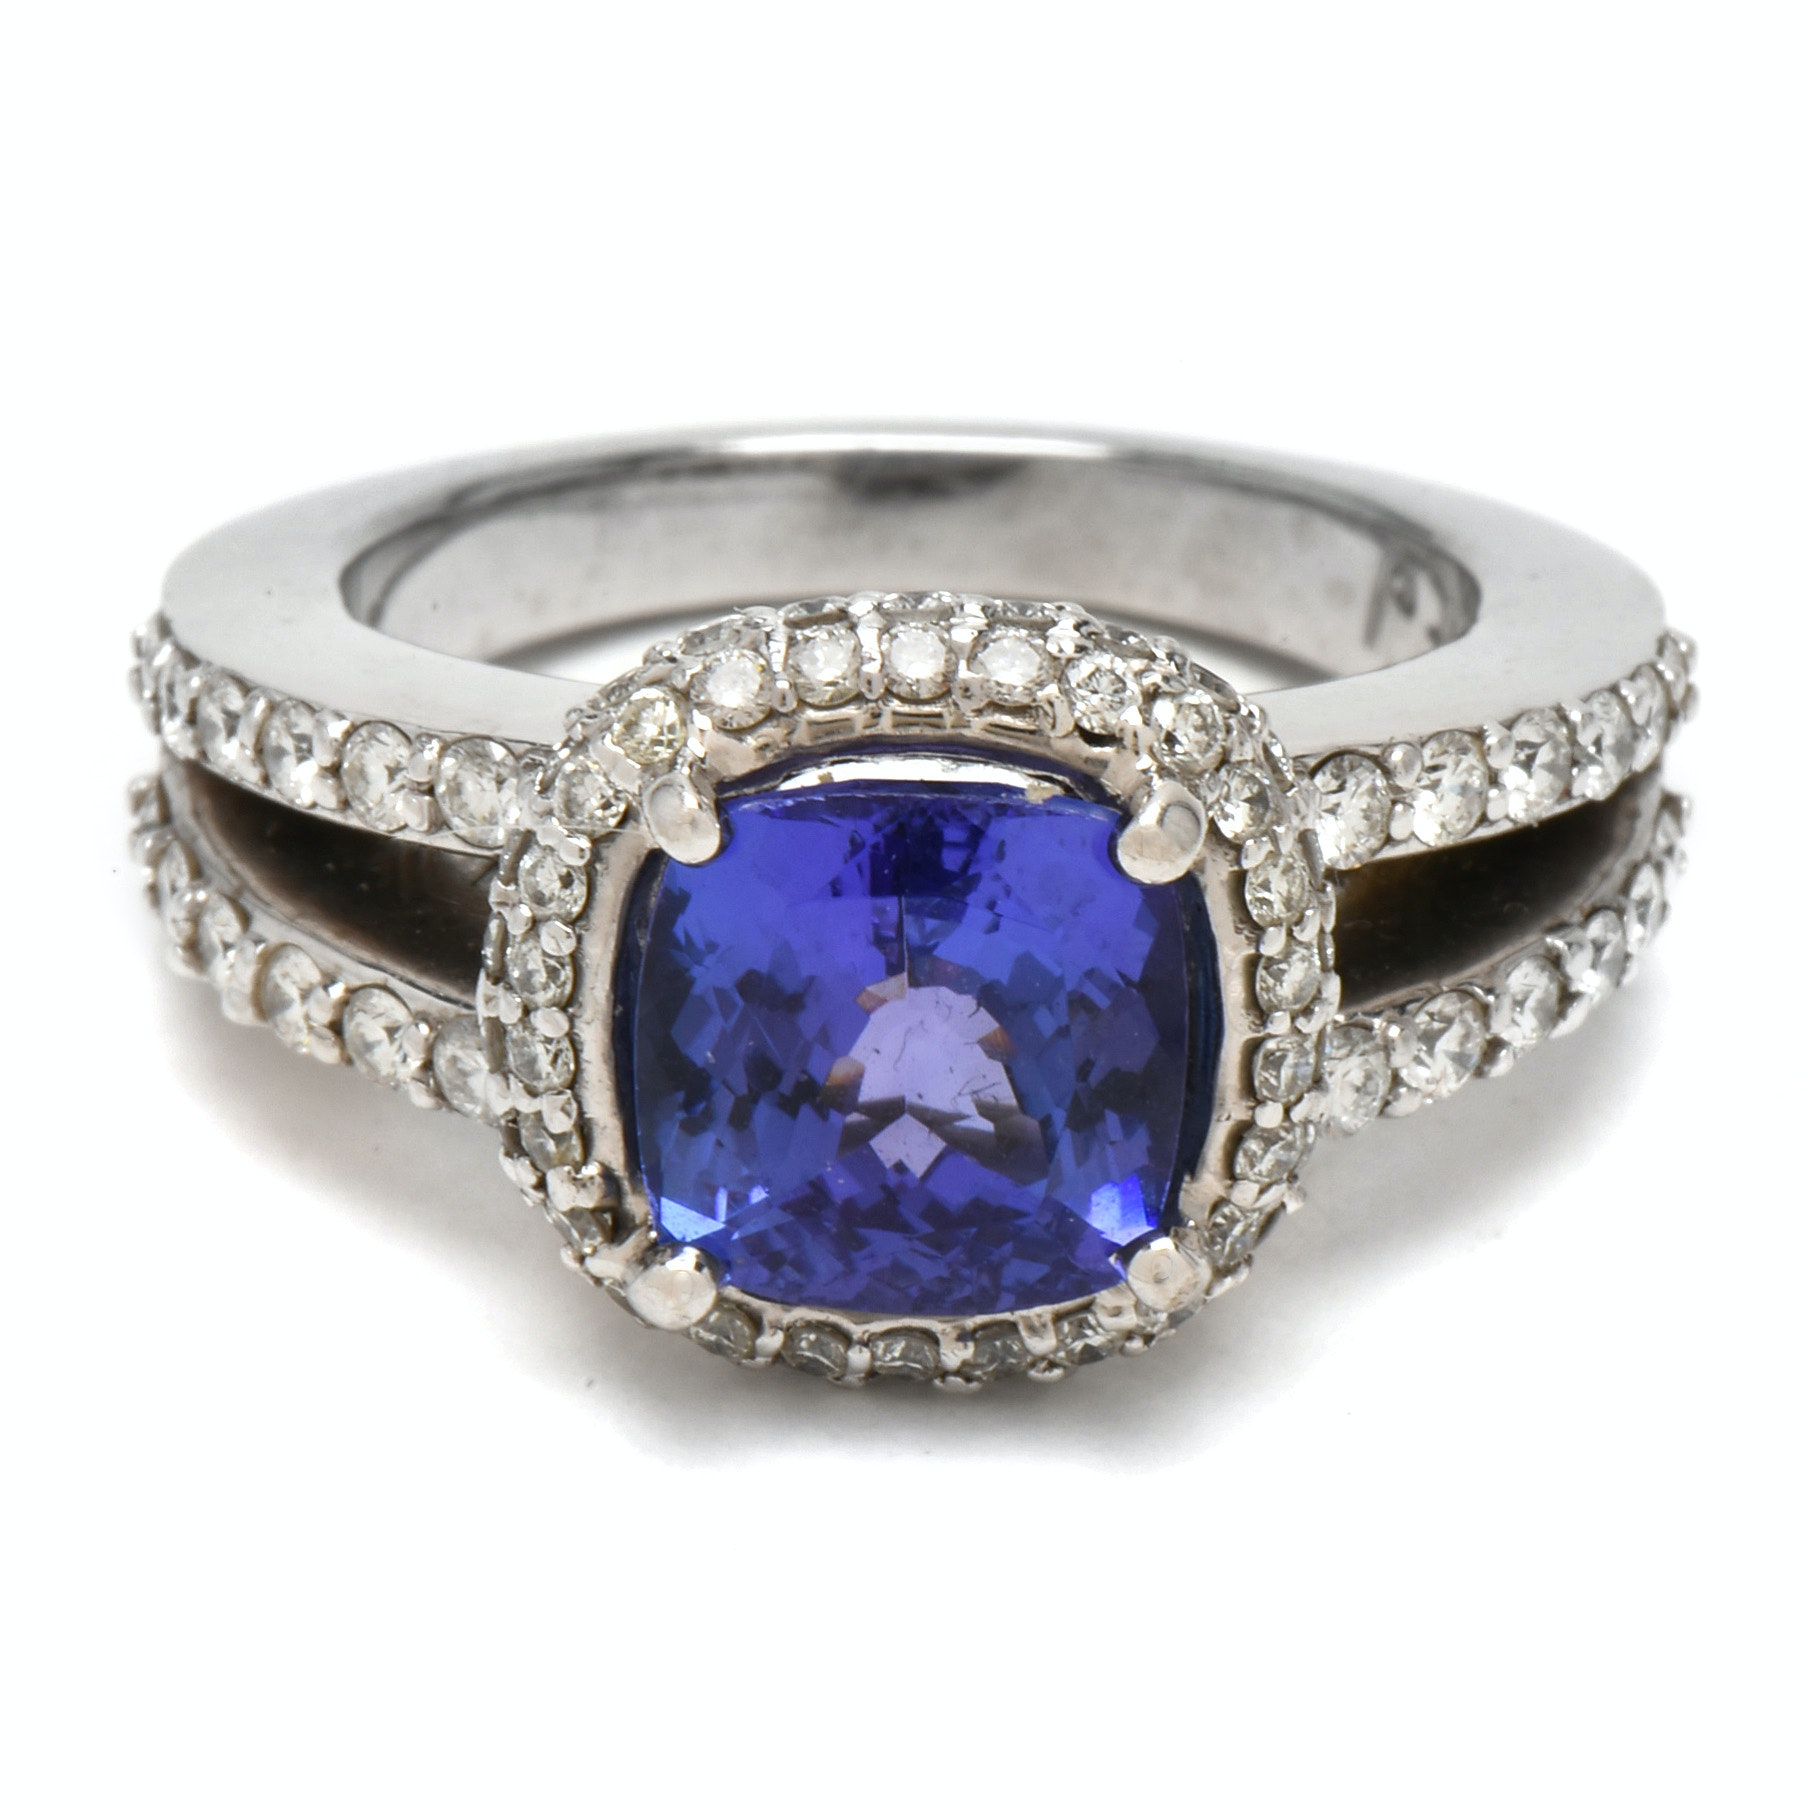 14K White Gold 2.15 CT Tanzanite Diamond Ring